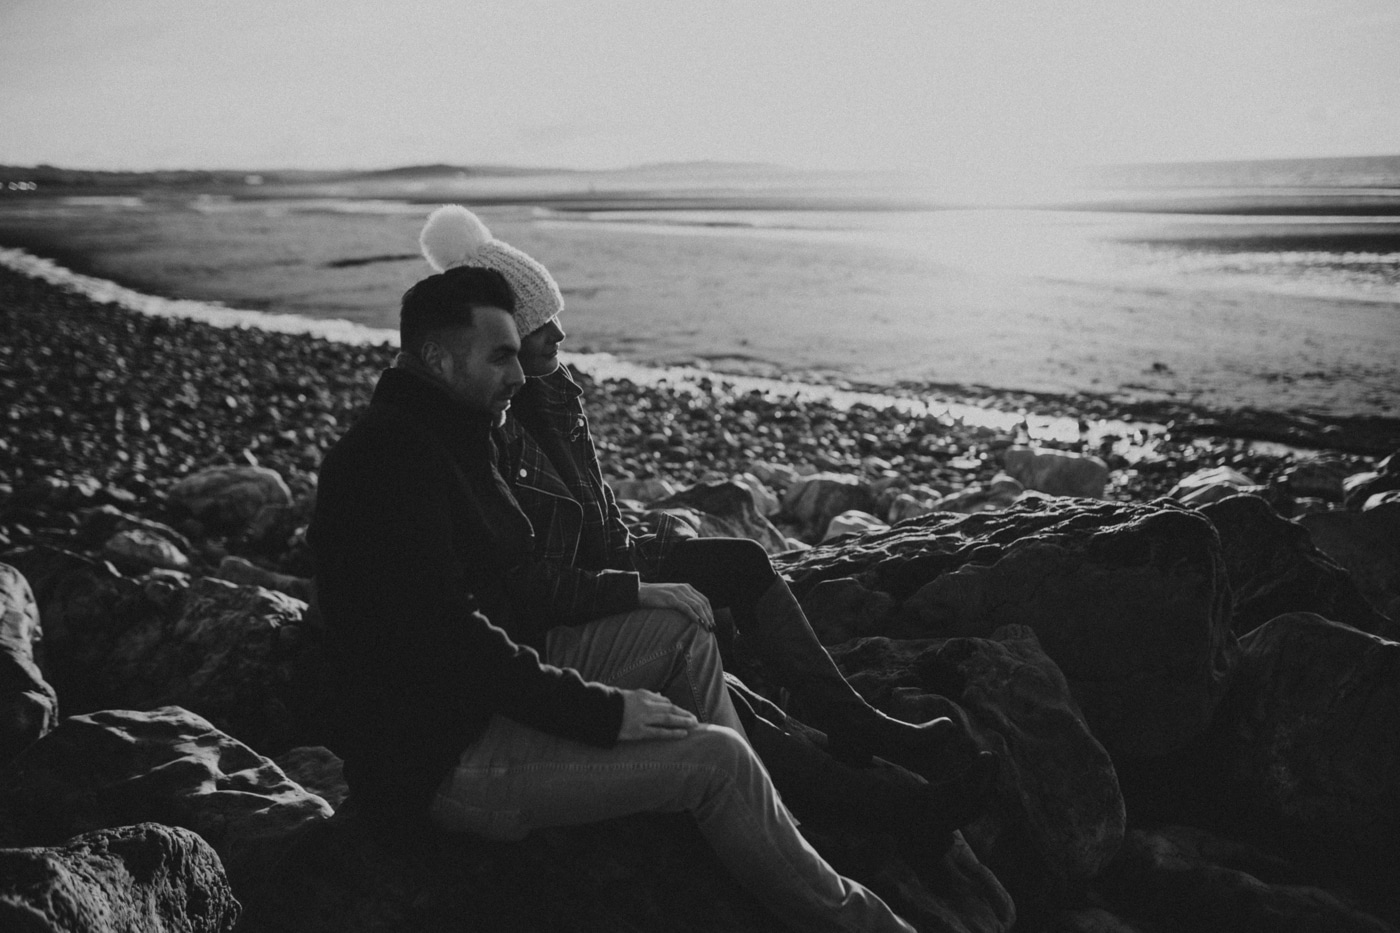 Man and woman on beach in cumbria by Joshua Wyborn